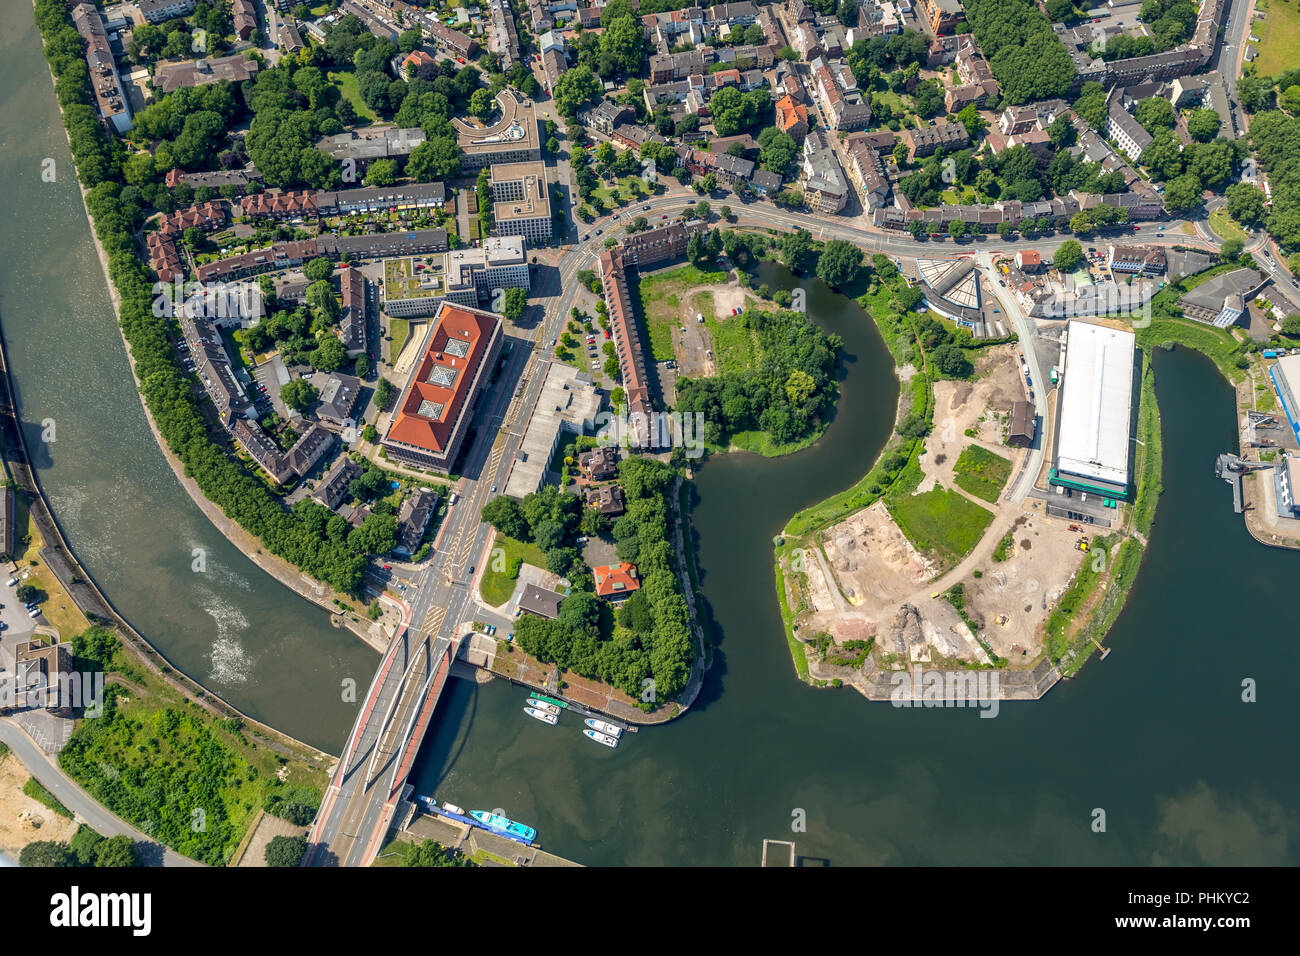 Aerial view, Ruhrort with Tausendfensterhaus and Duisburg harbour entrance, brownfields Alte Duisburger Straße, Duisburg, Ruhrgebiet, North Rhine-West - Stock Image